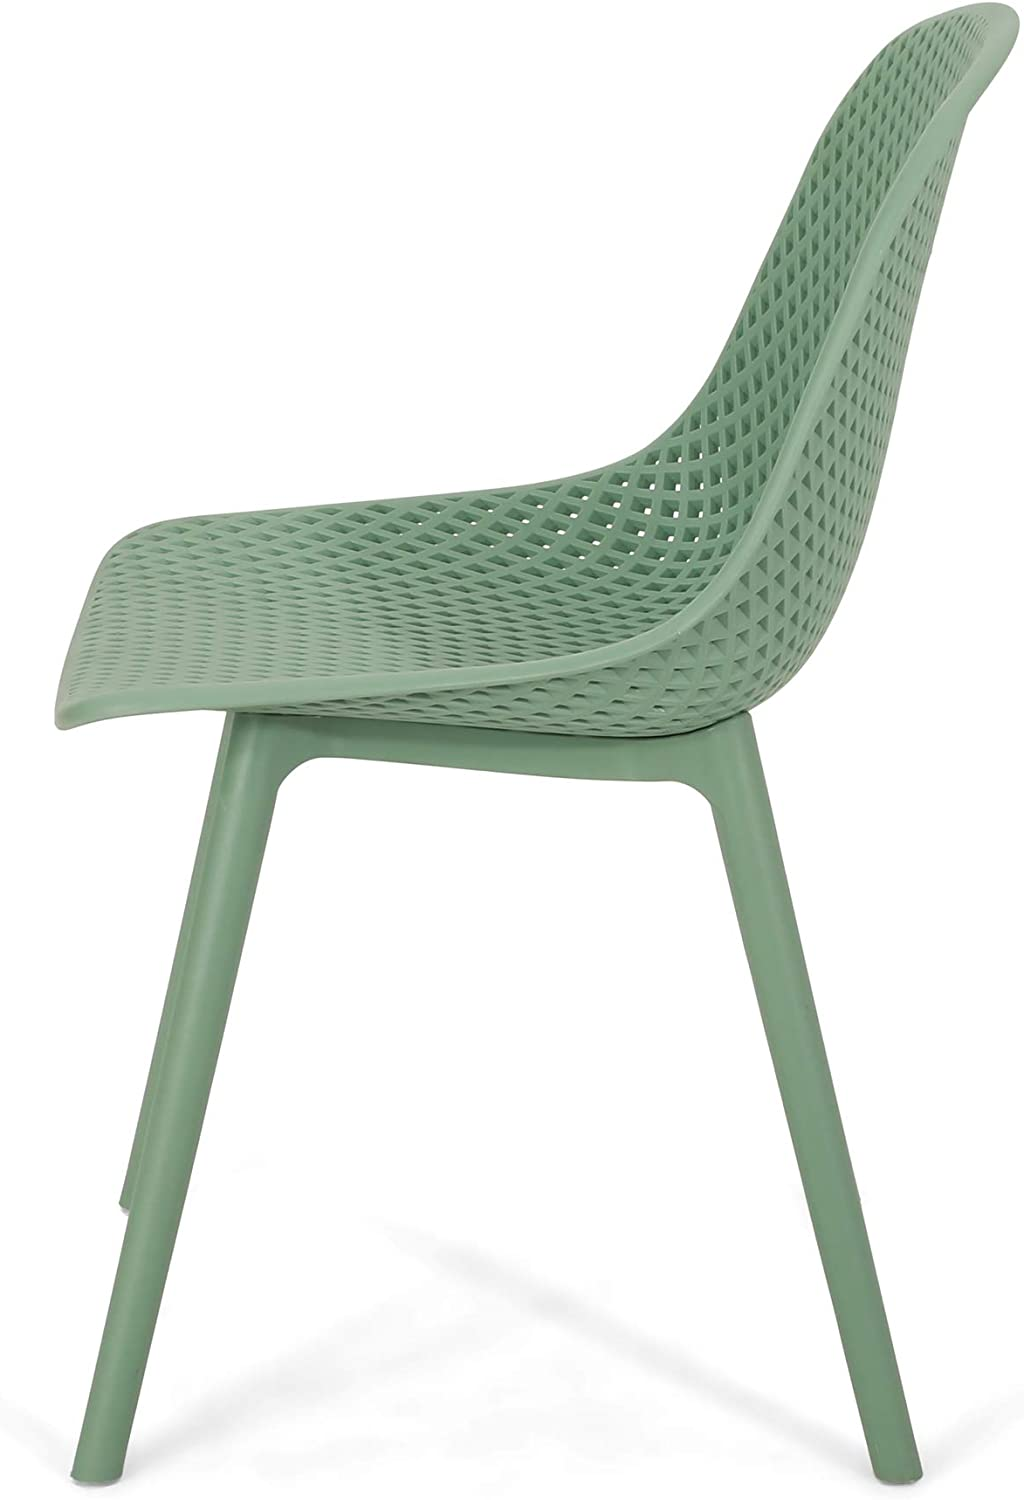 Green Set of 2 Christopher Knight Home 312460 Darleen Outdoor Dining Chair